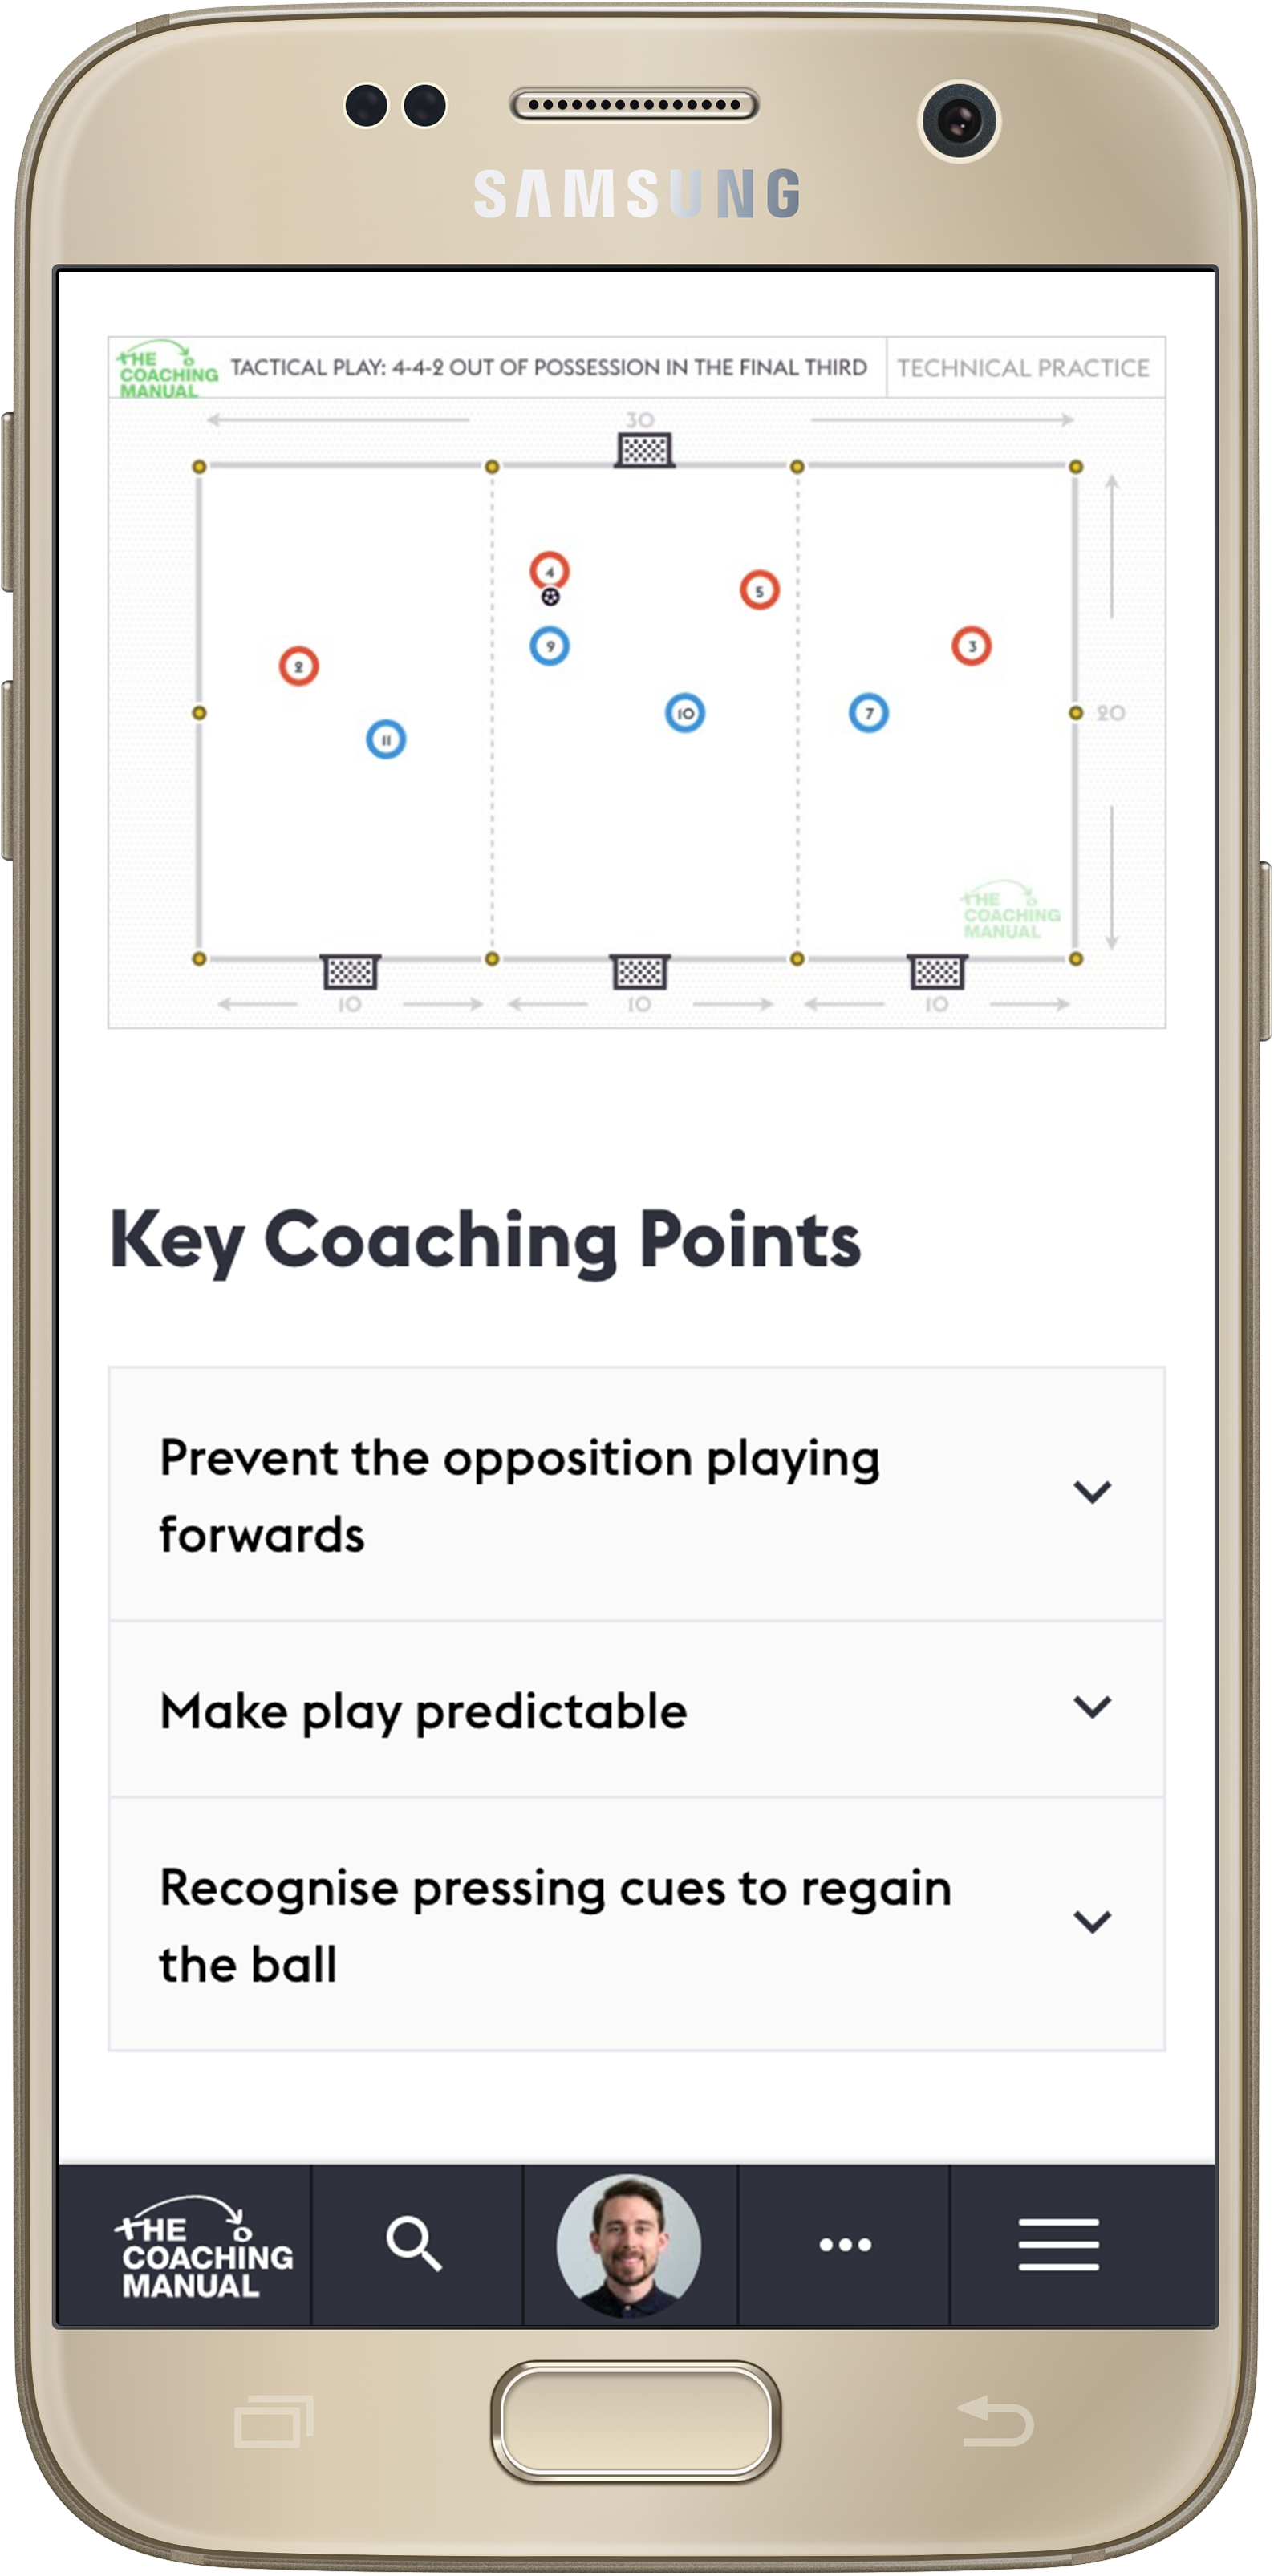 Samsung phone displaying full coaching sessions